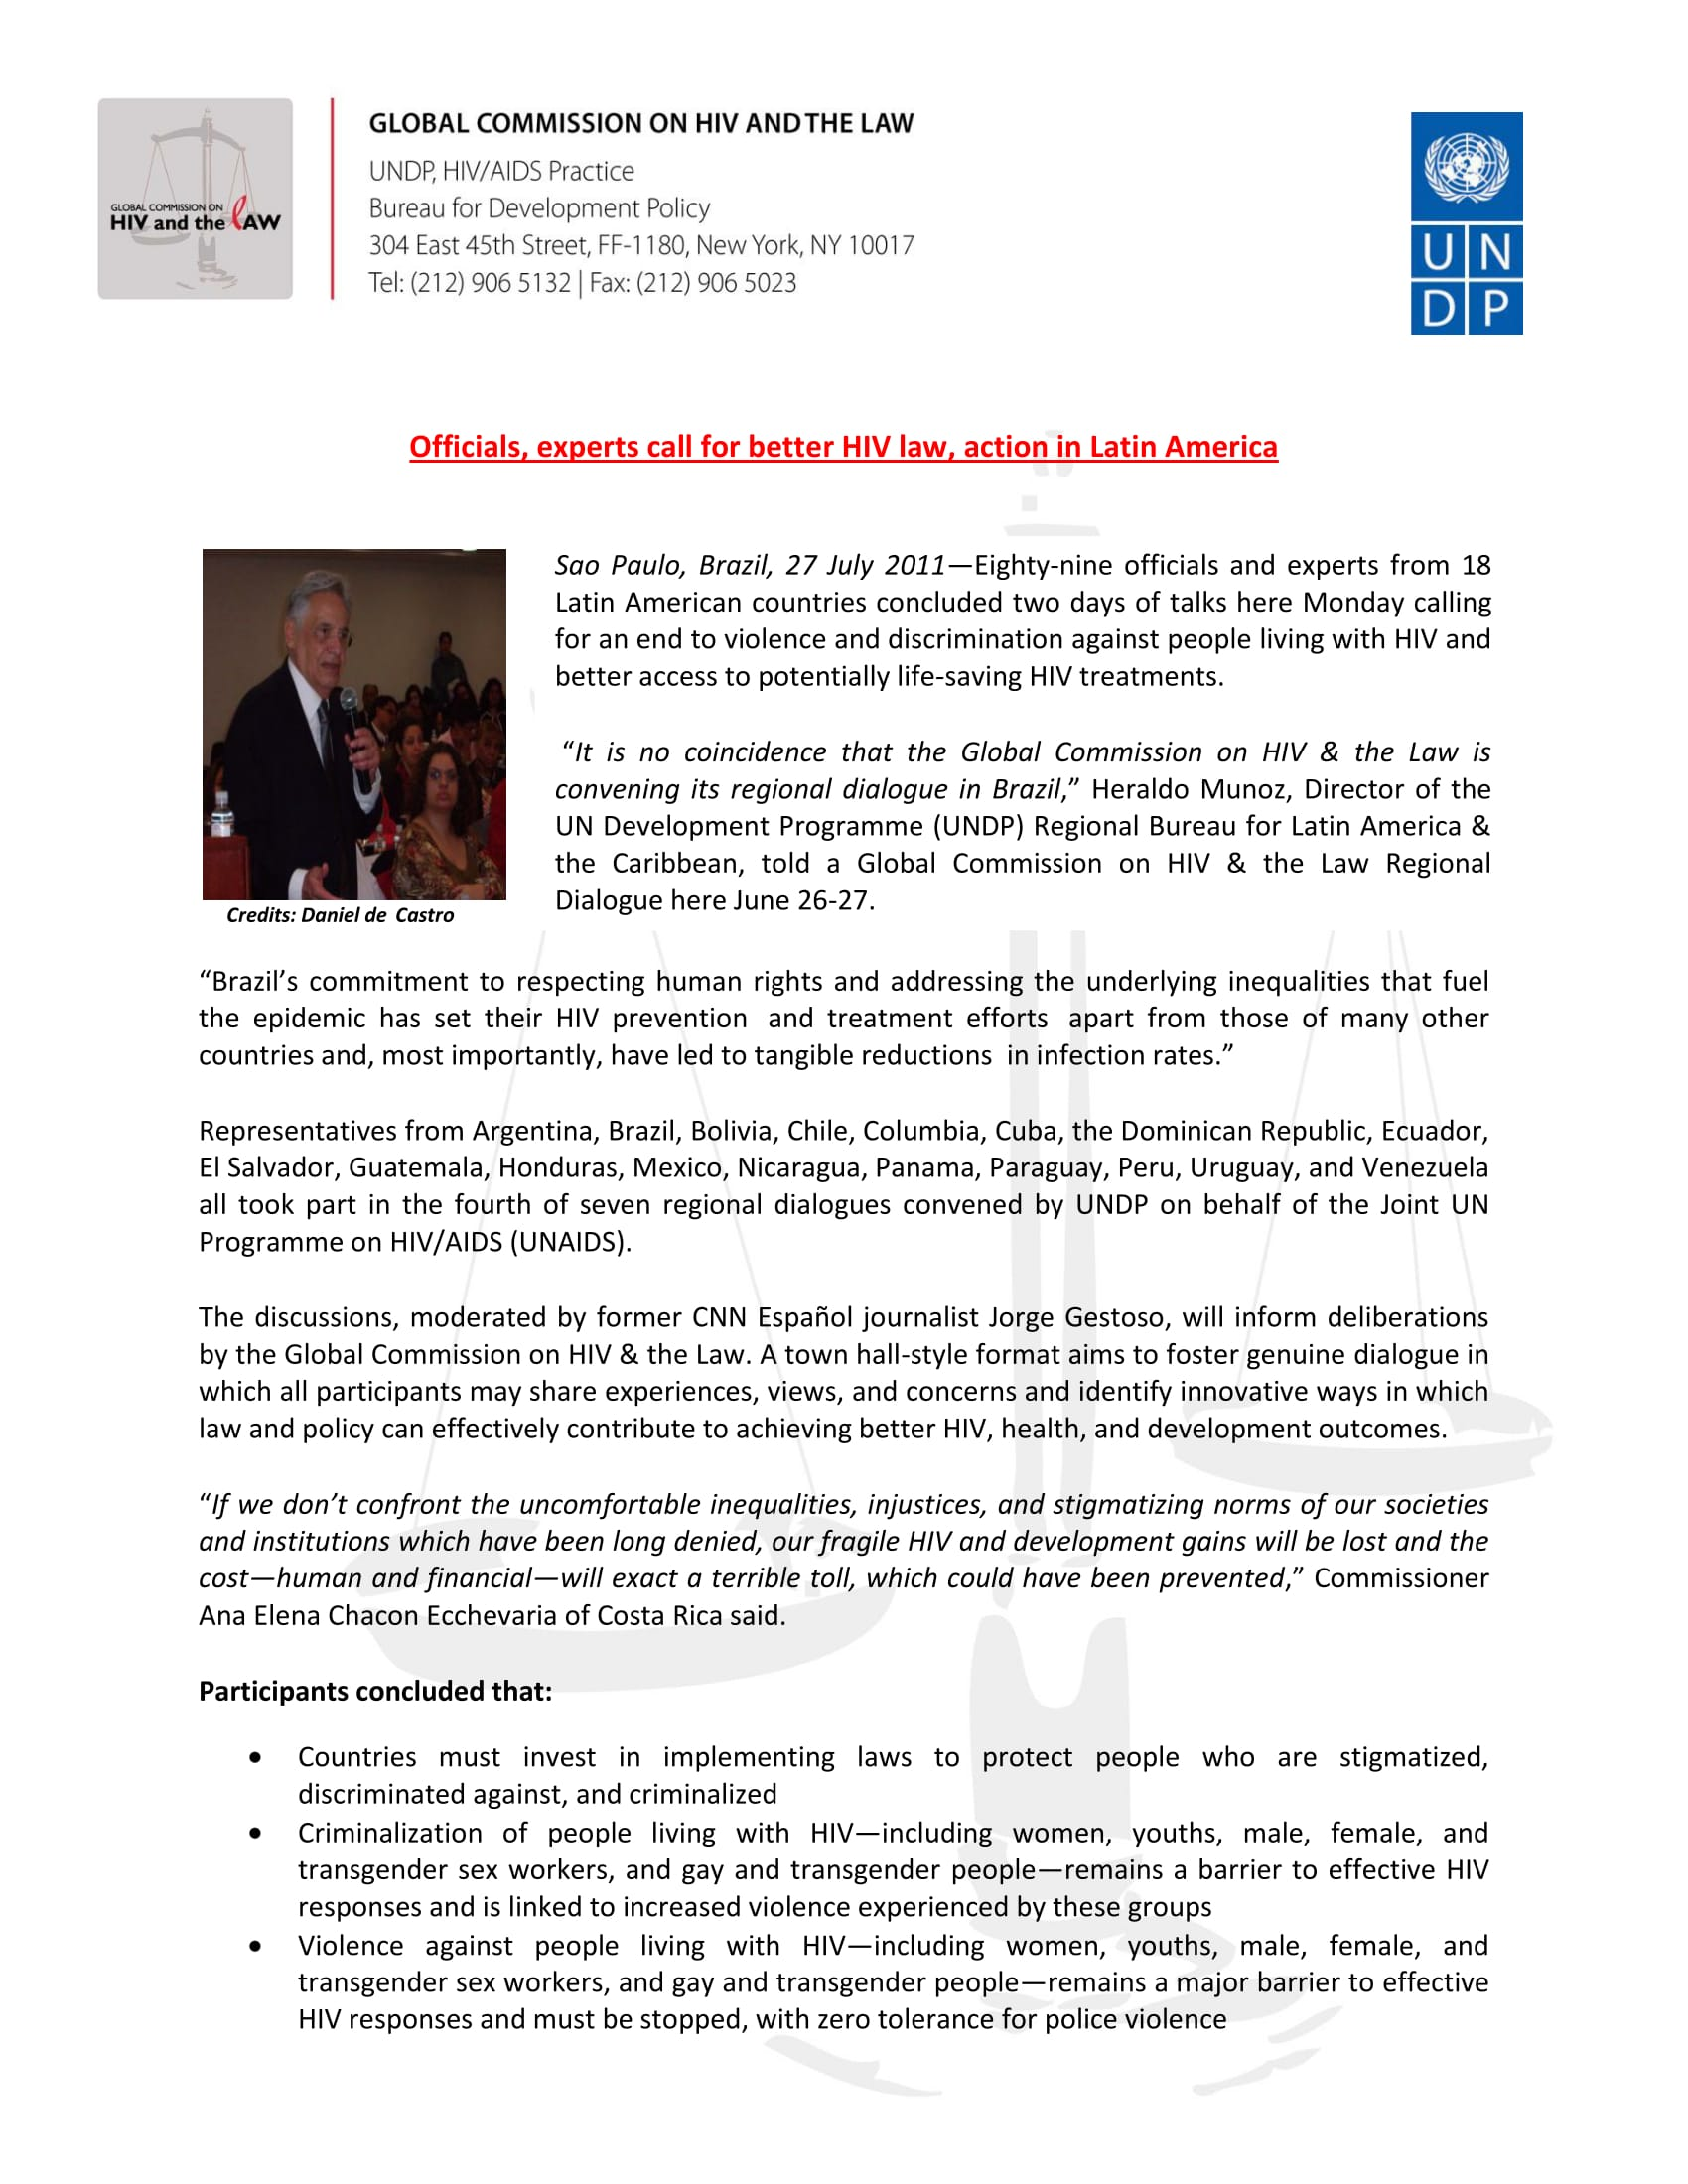 Media Release: Officials, experts call for better HIV law, action in Latin America